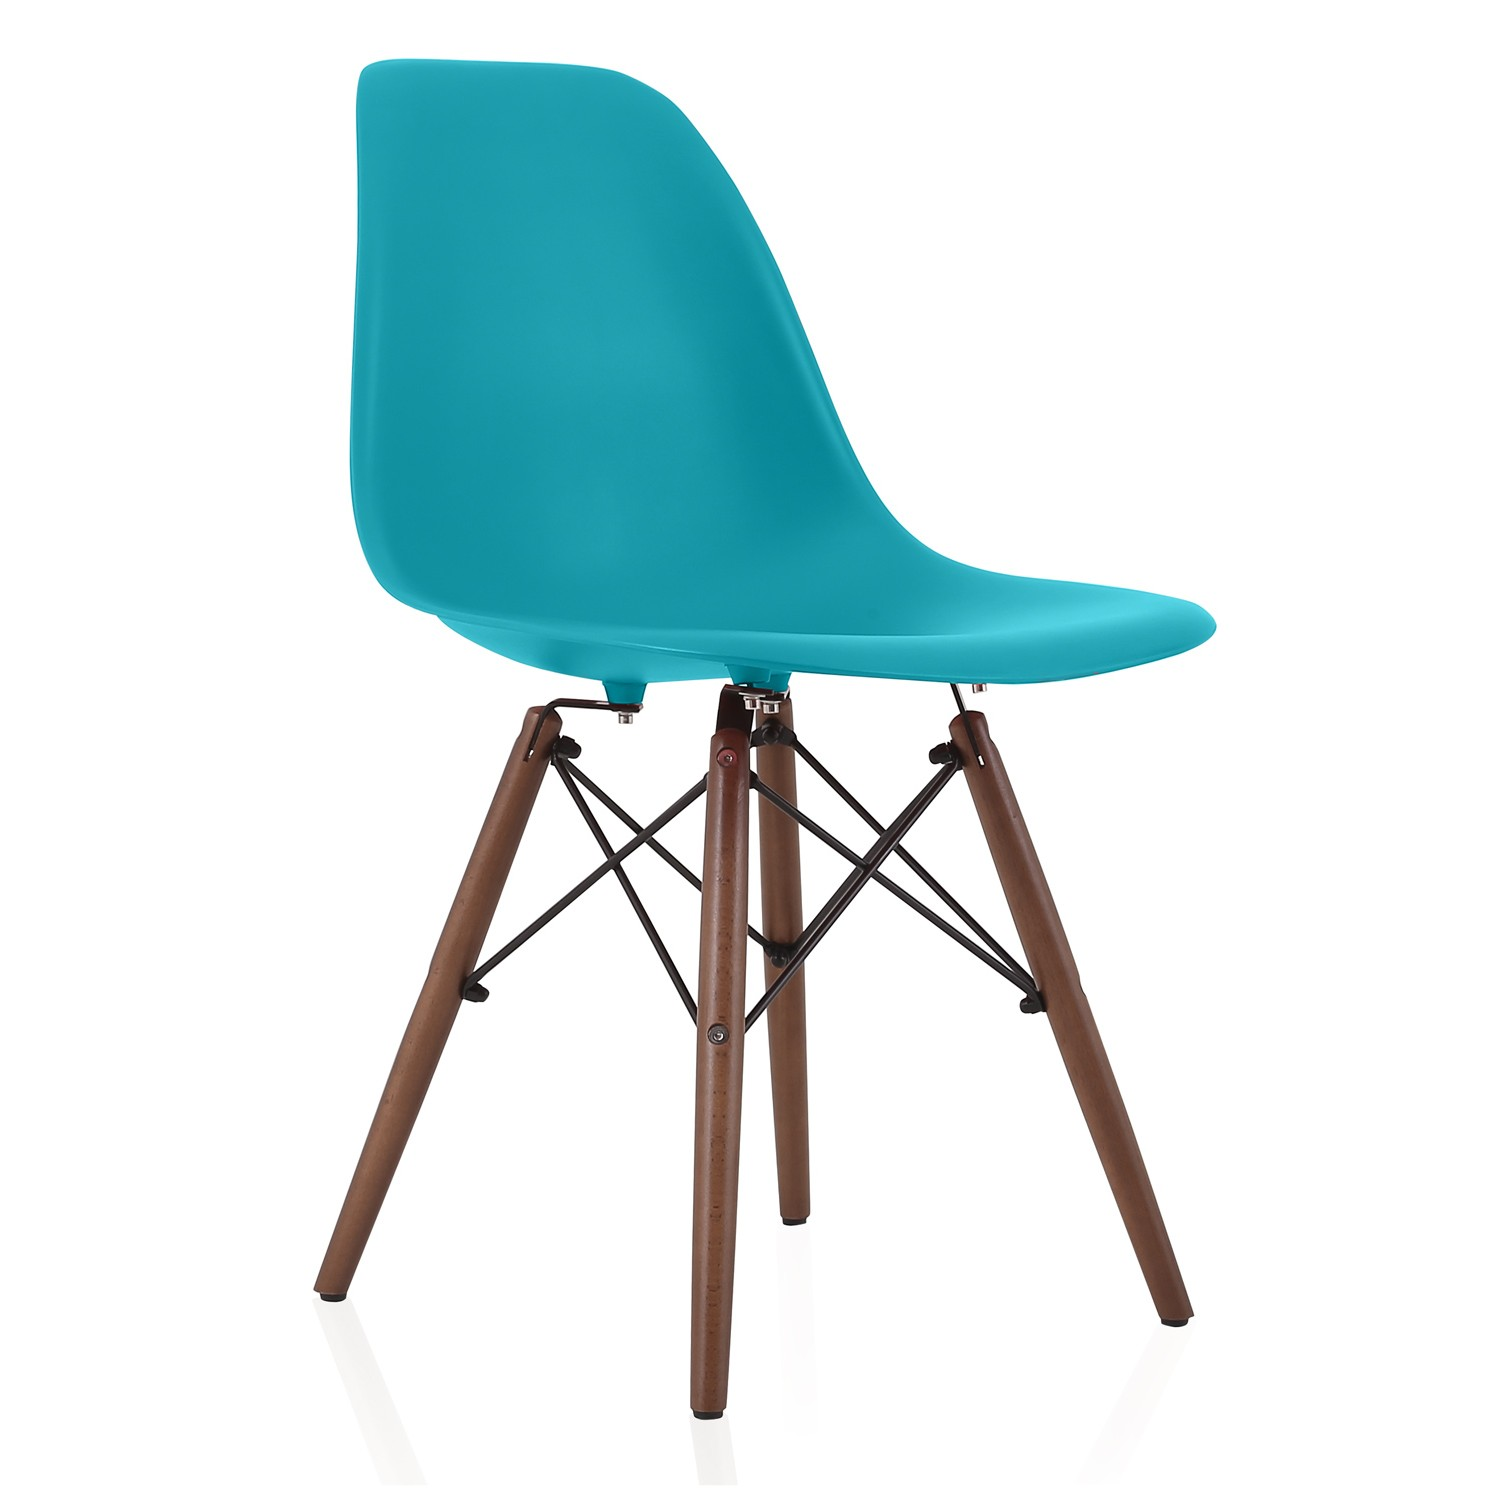 nature series teal blue eames style dsw molded plastic dining side chair dark walnut wood eiffel. Black Bedroom Furniture Sets. Home Design Ideas